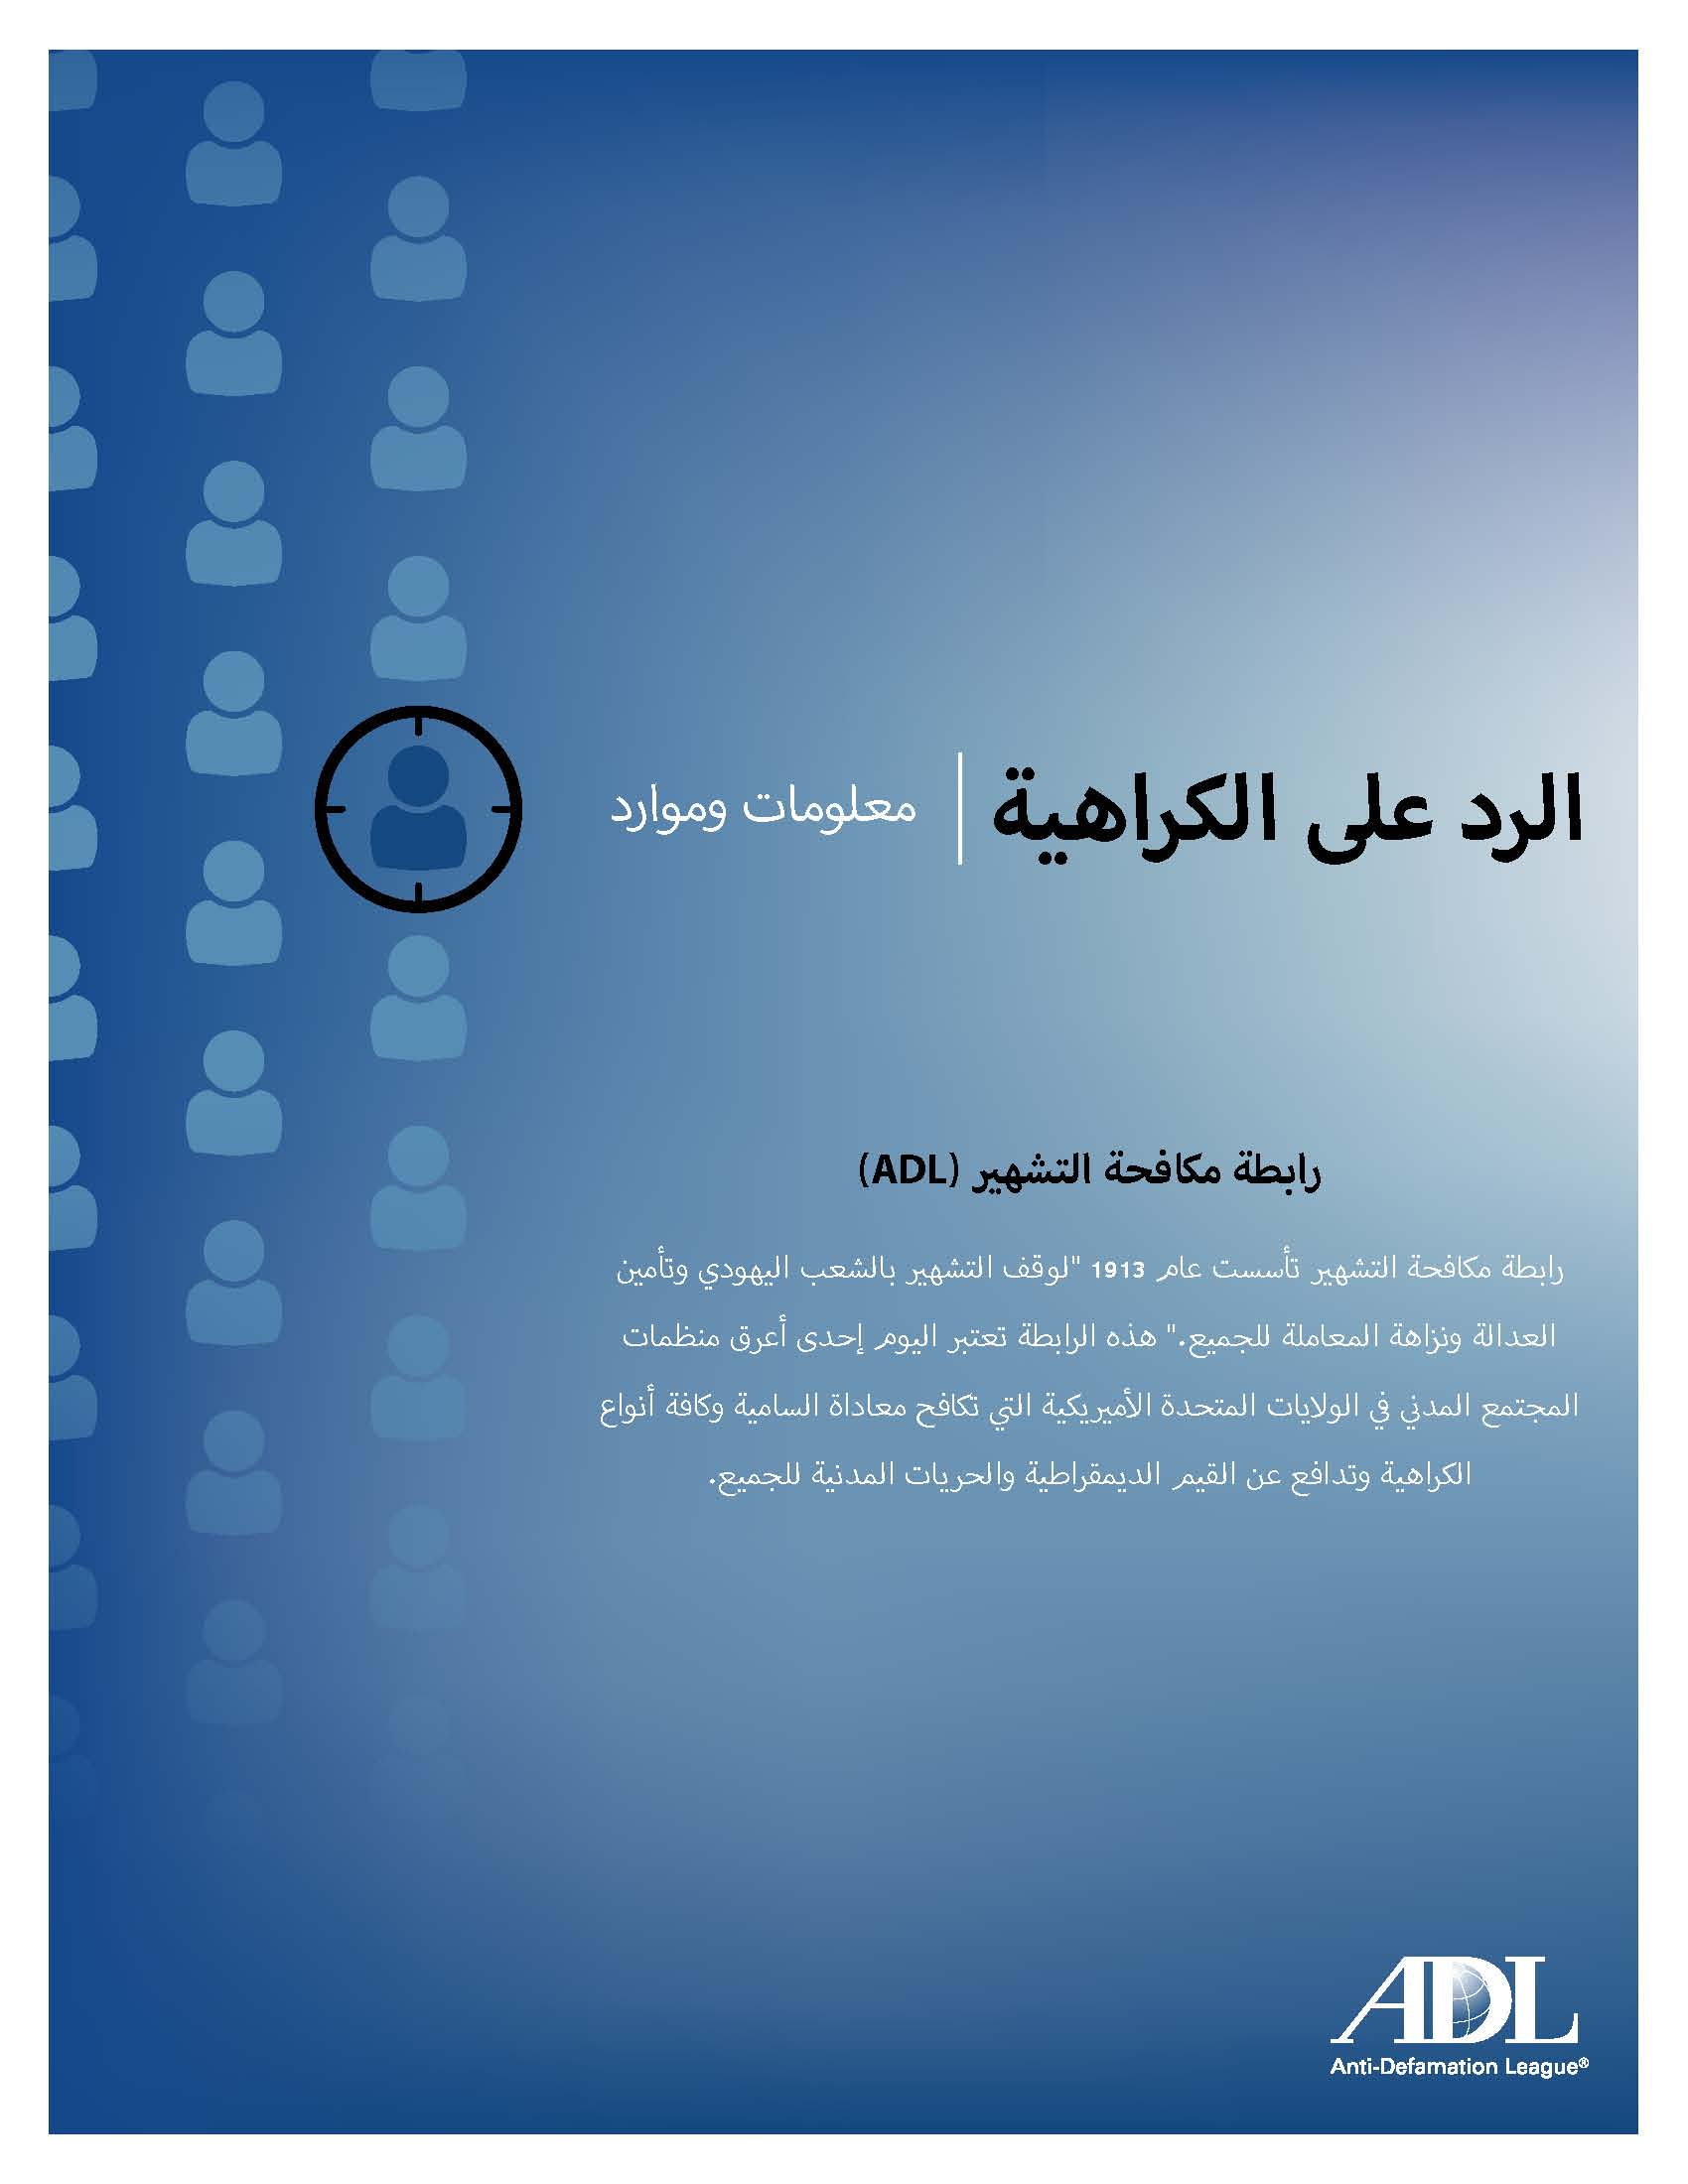 Responding to Hate: Information and Resources - Arabic Version